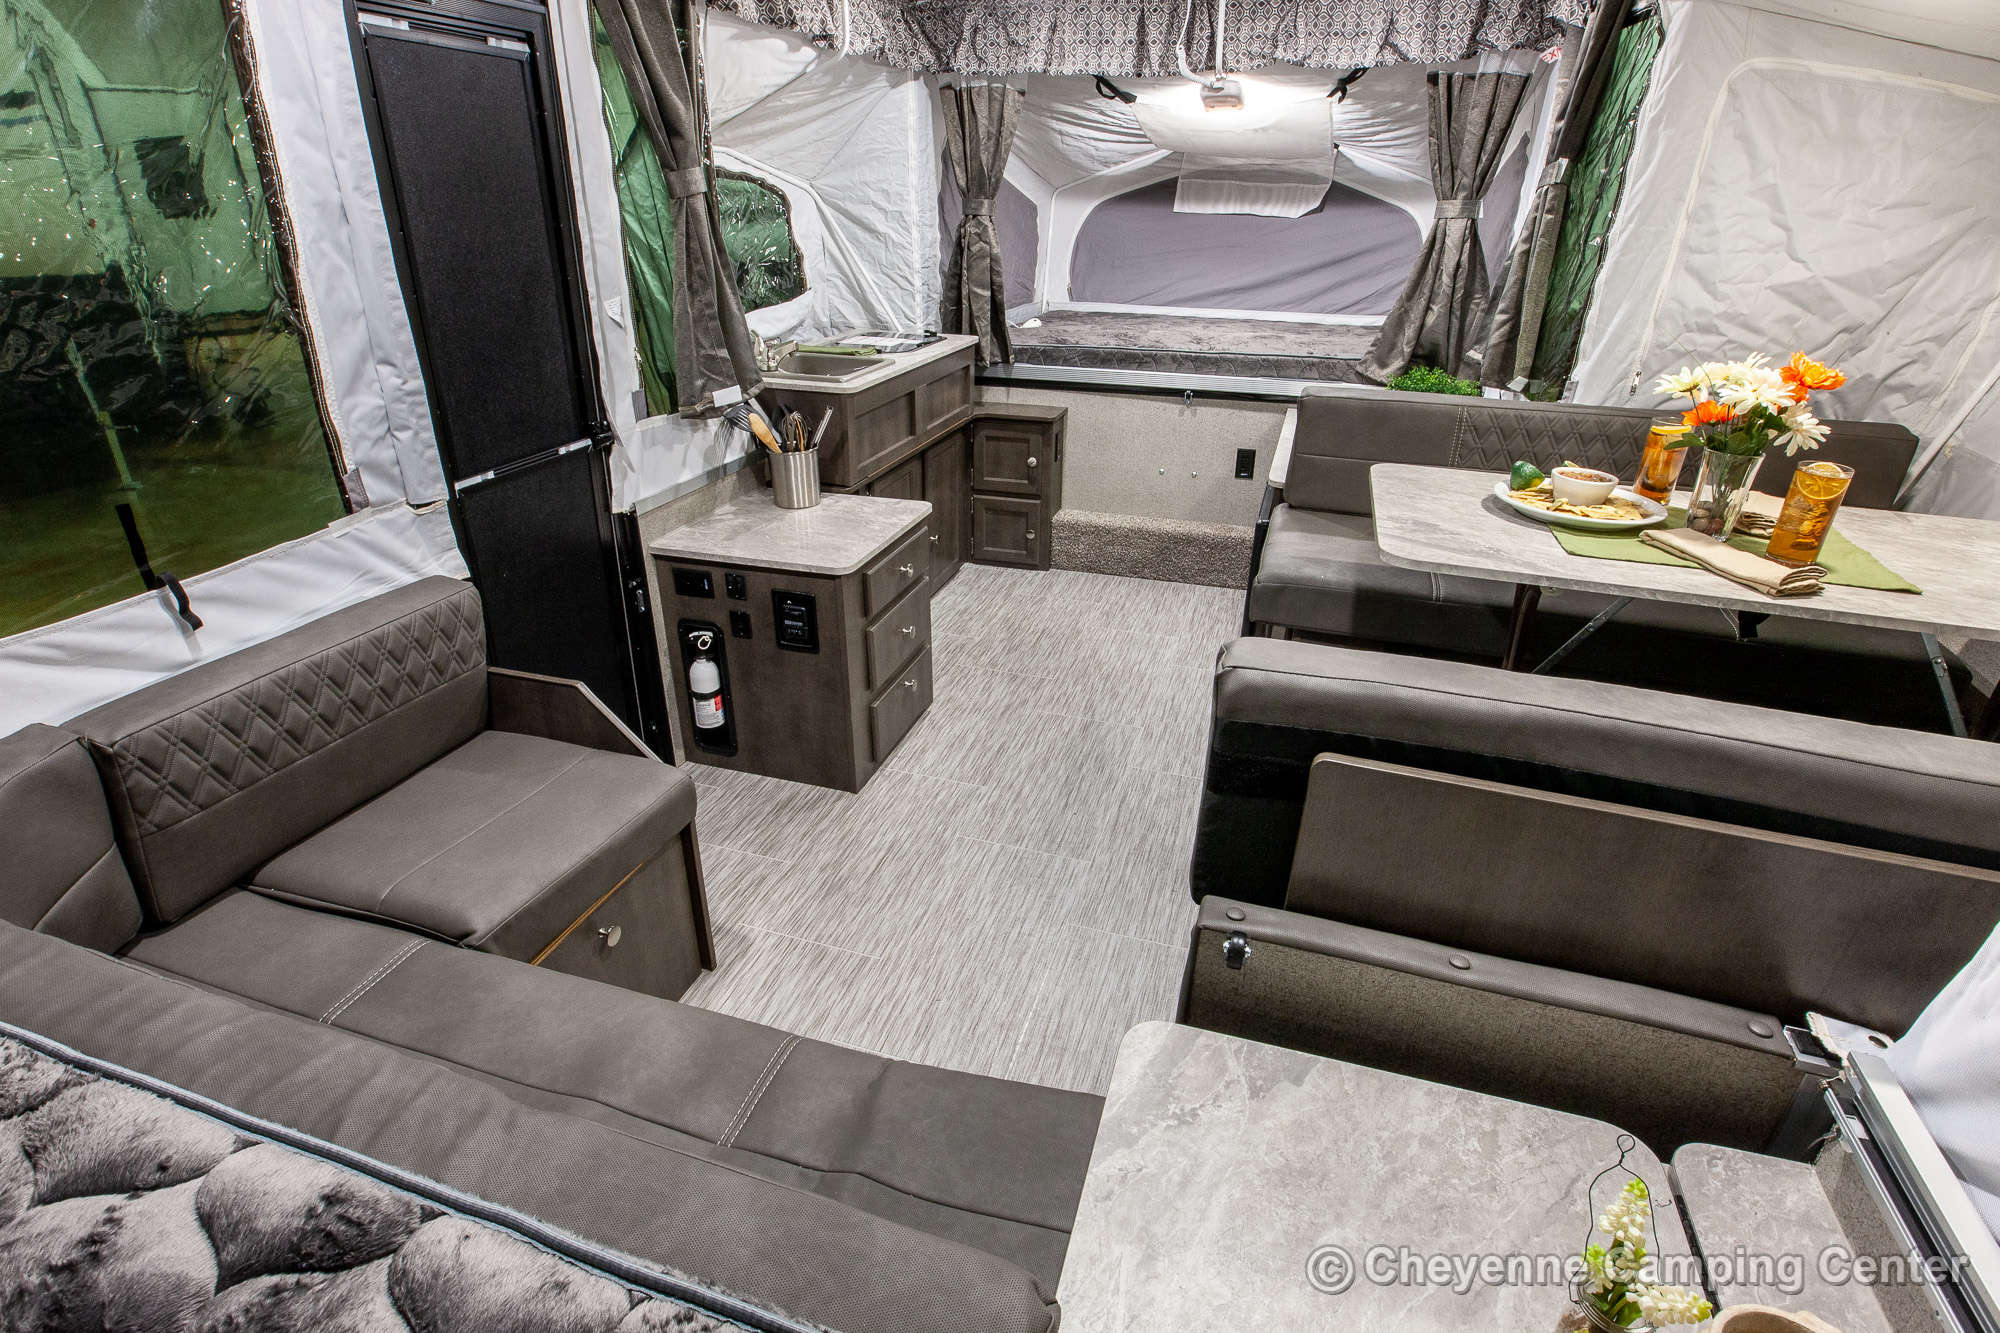 2021 Forest River Flagstaff MAC 425M Folding Camper Interior Image